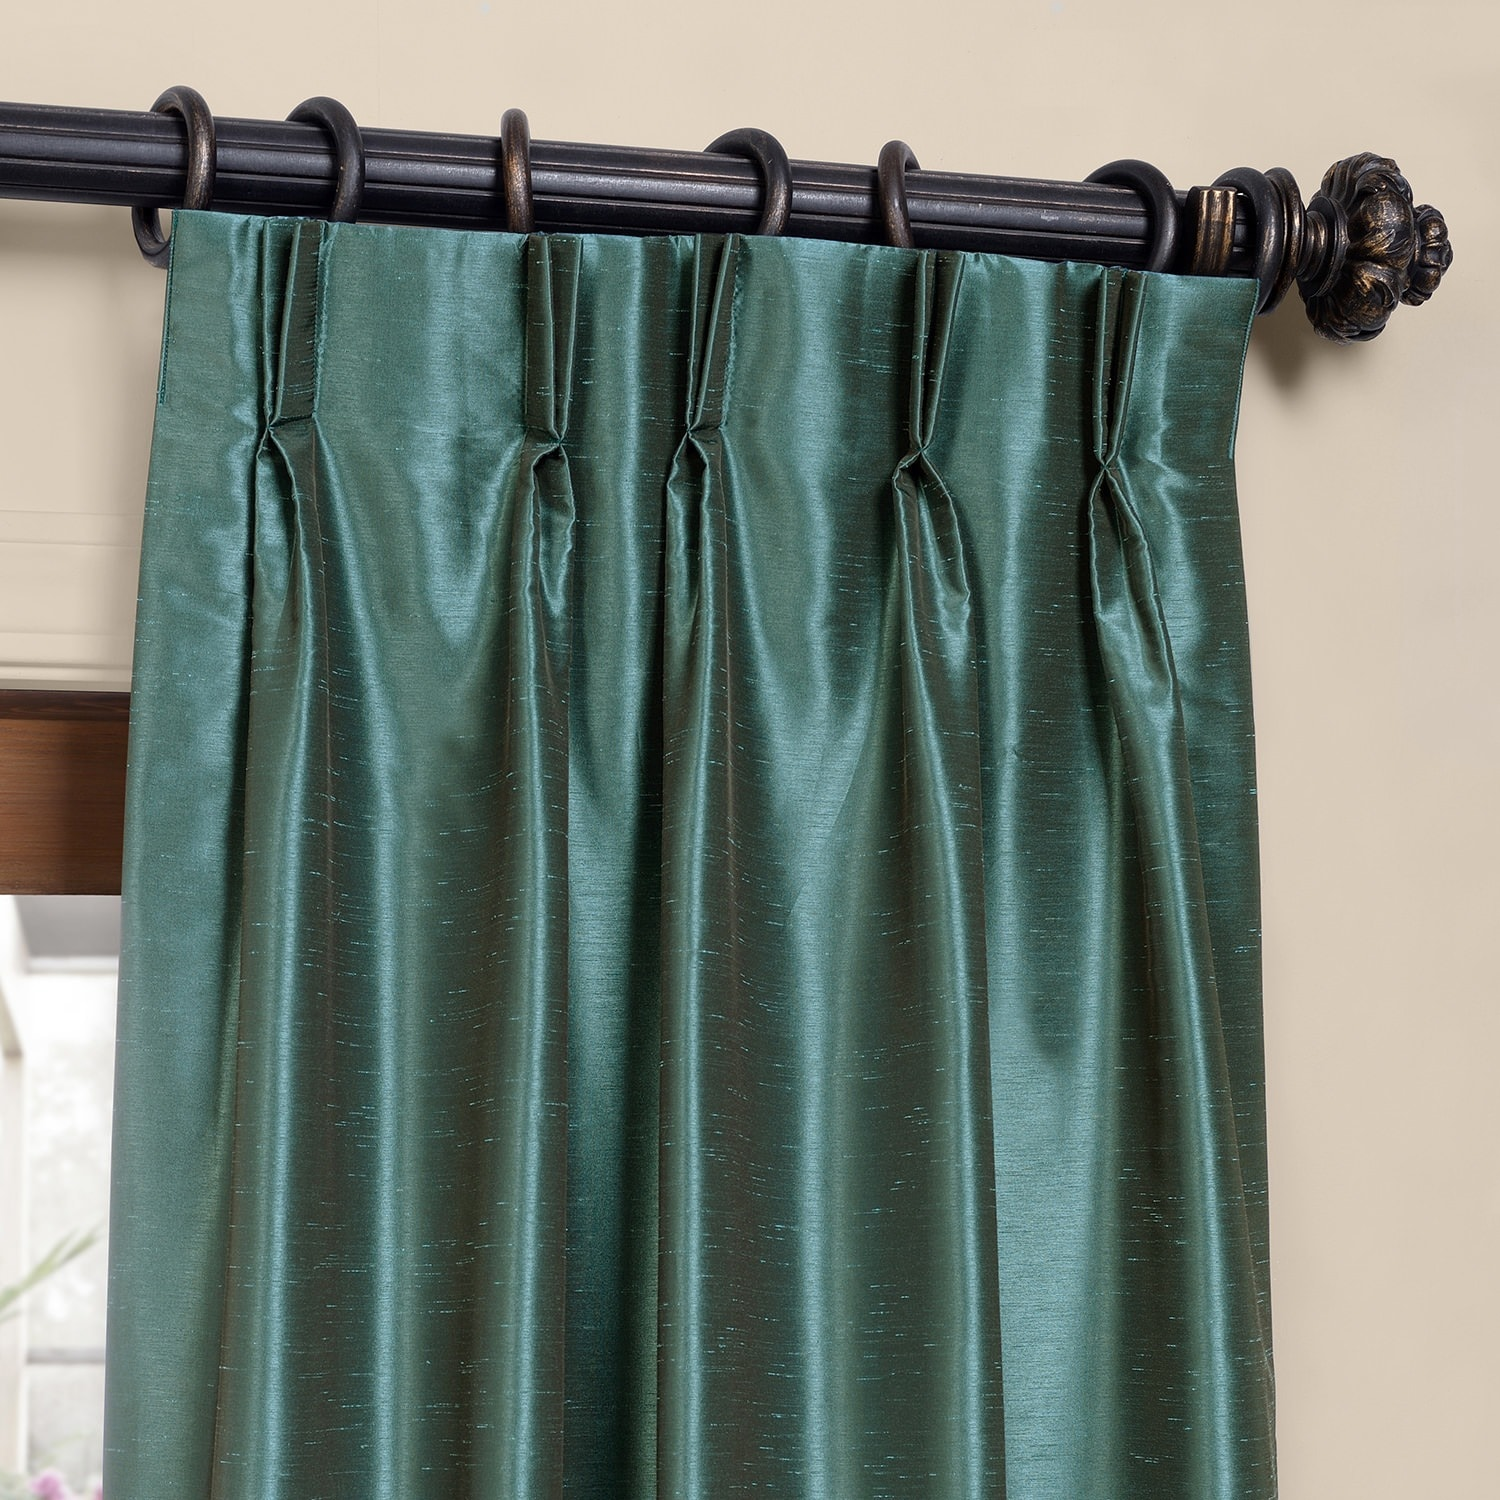 curtains of different your drapery types pinch shade store drapes residence decor guide pleat styles a the homely for to pleated